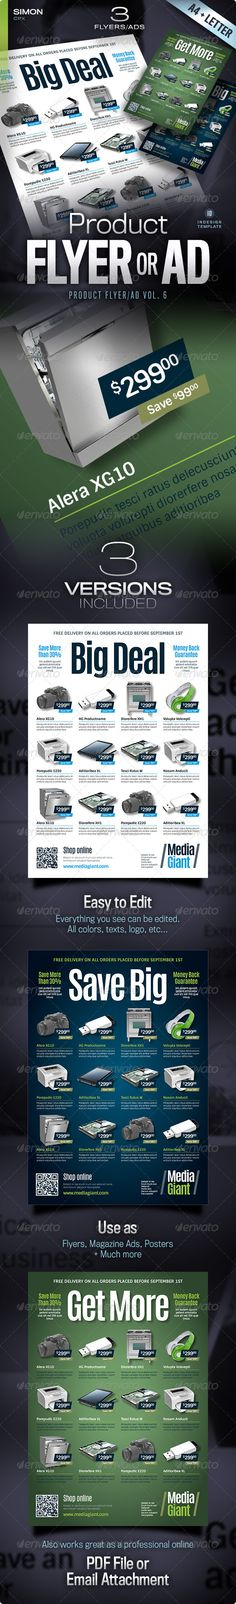 Buy Product Flyer/Ad Vol. 6 by simon-cpx on GraphicRiver. Product Flyer/Ad Vol. 6 3 professional, clean and modern product flyers or magazine ads. Just drop in your own image. Deep Cleaning Lists, Cleaning Oven Racks, Cleaning Tips, Home Cleaning Schedule Printable, Kids Schedule, Cleaning Floor Grout, Face Cleaning Routine, Organic Cleaning Products, Cleaning Business